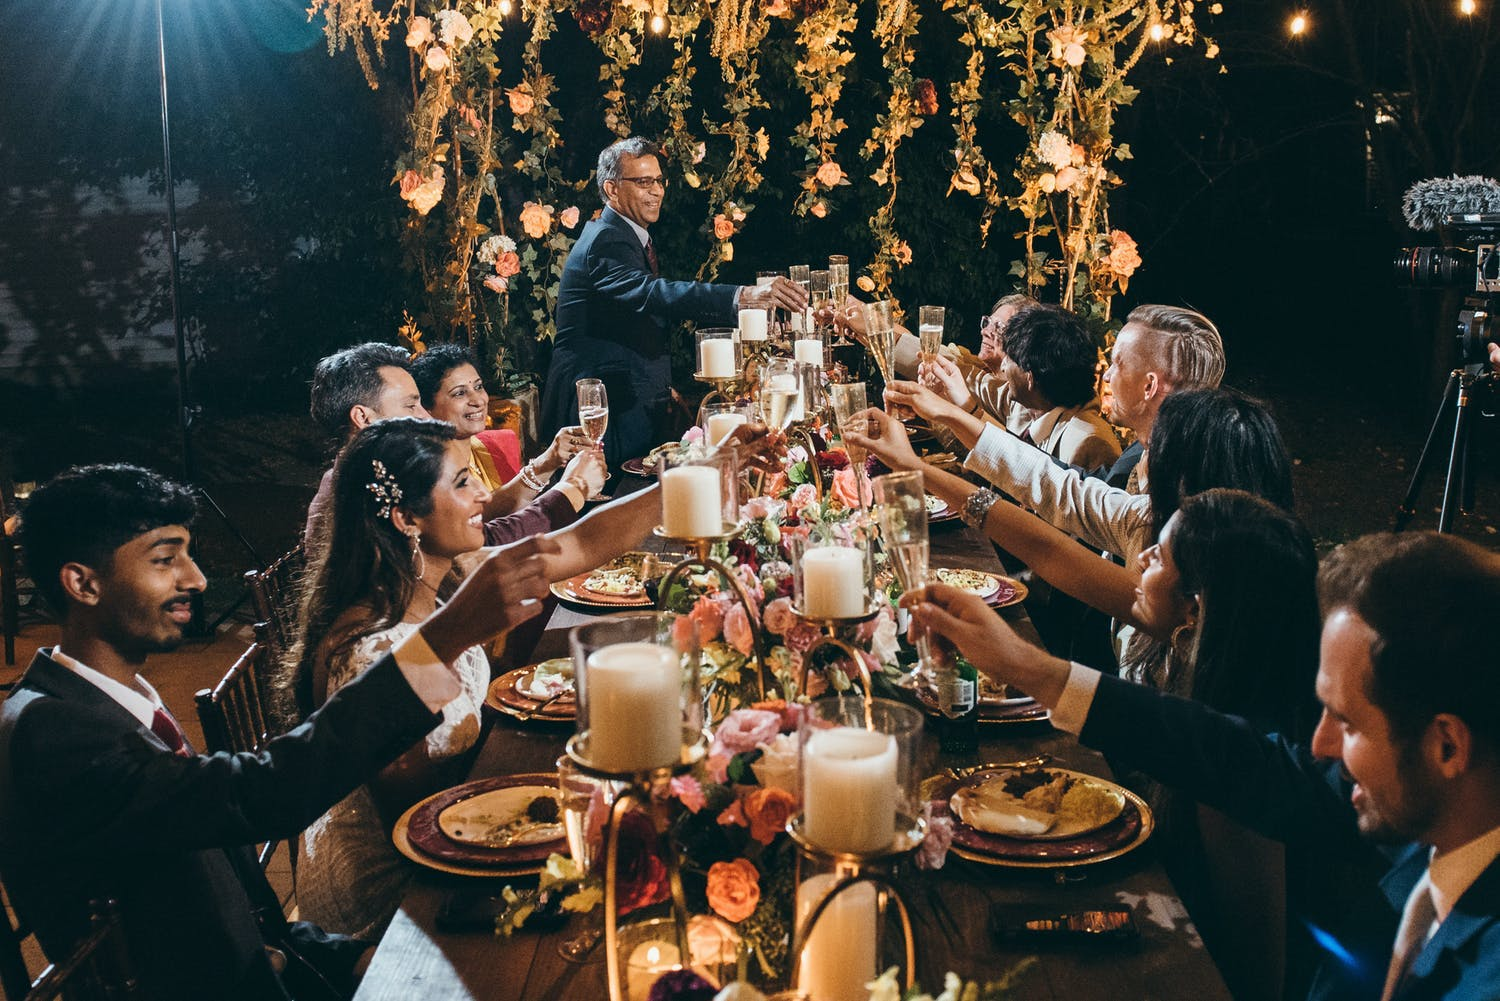 Night time wedding reception with king's table laden in candlelight and a floral installation at one end   PartySlate